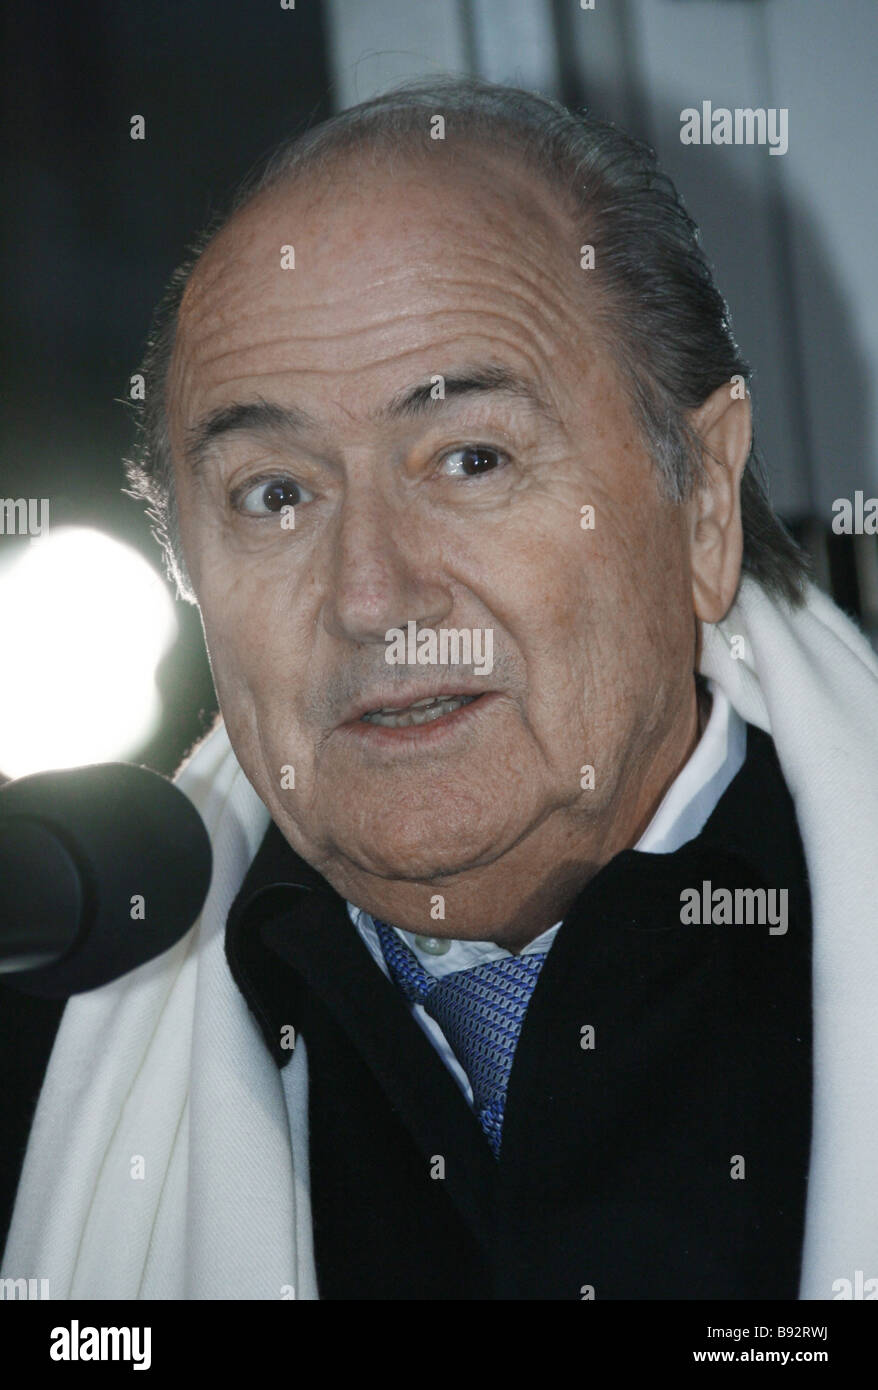 FIFA President Joseph S Blatter at the Soccer House presentation in Moscow - Stock Image